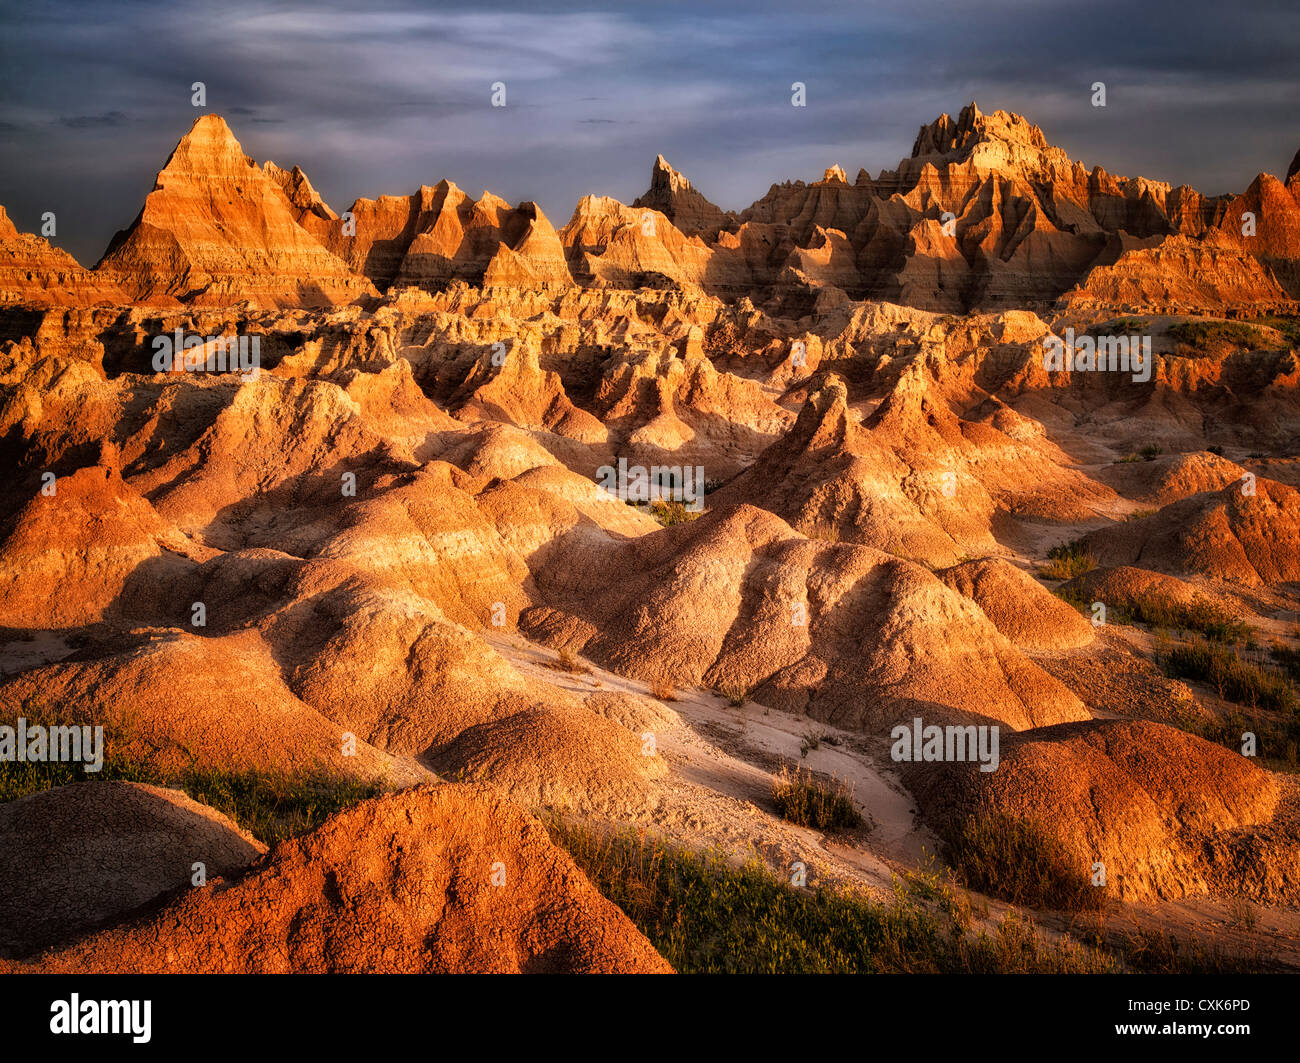 Ausgewaschene Felsformationen in Badlands Nationalpark, South Dakota. Stockbild